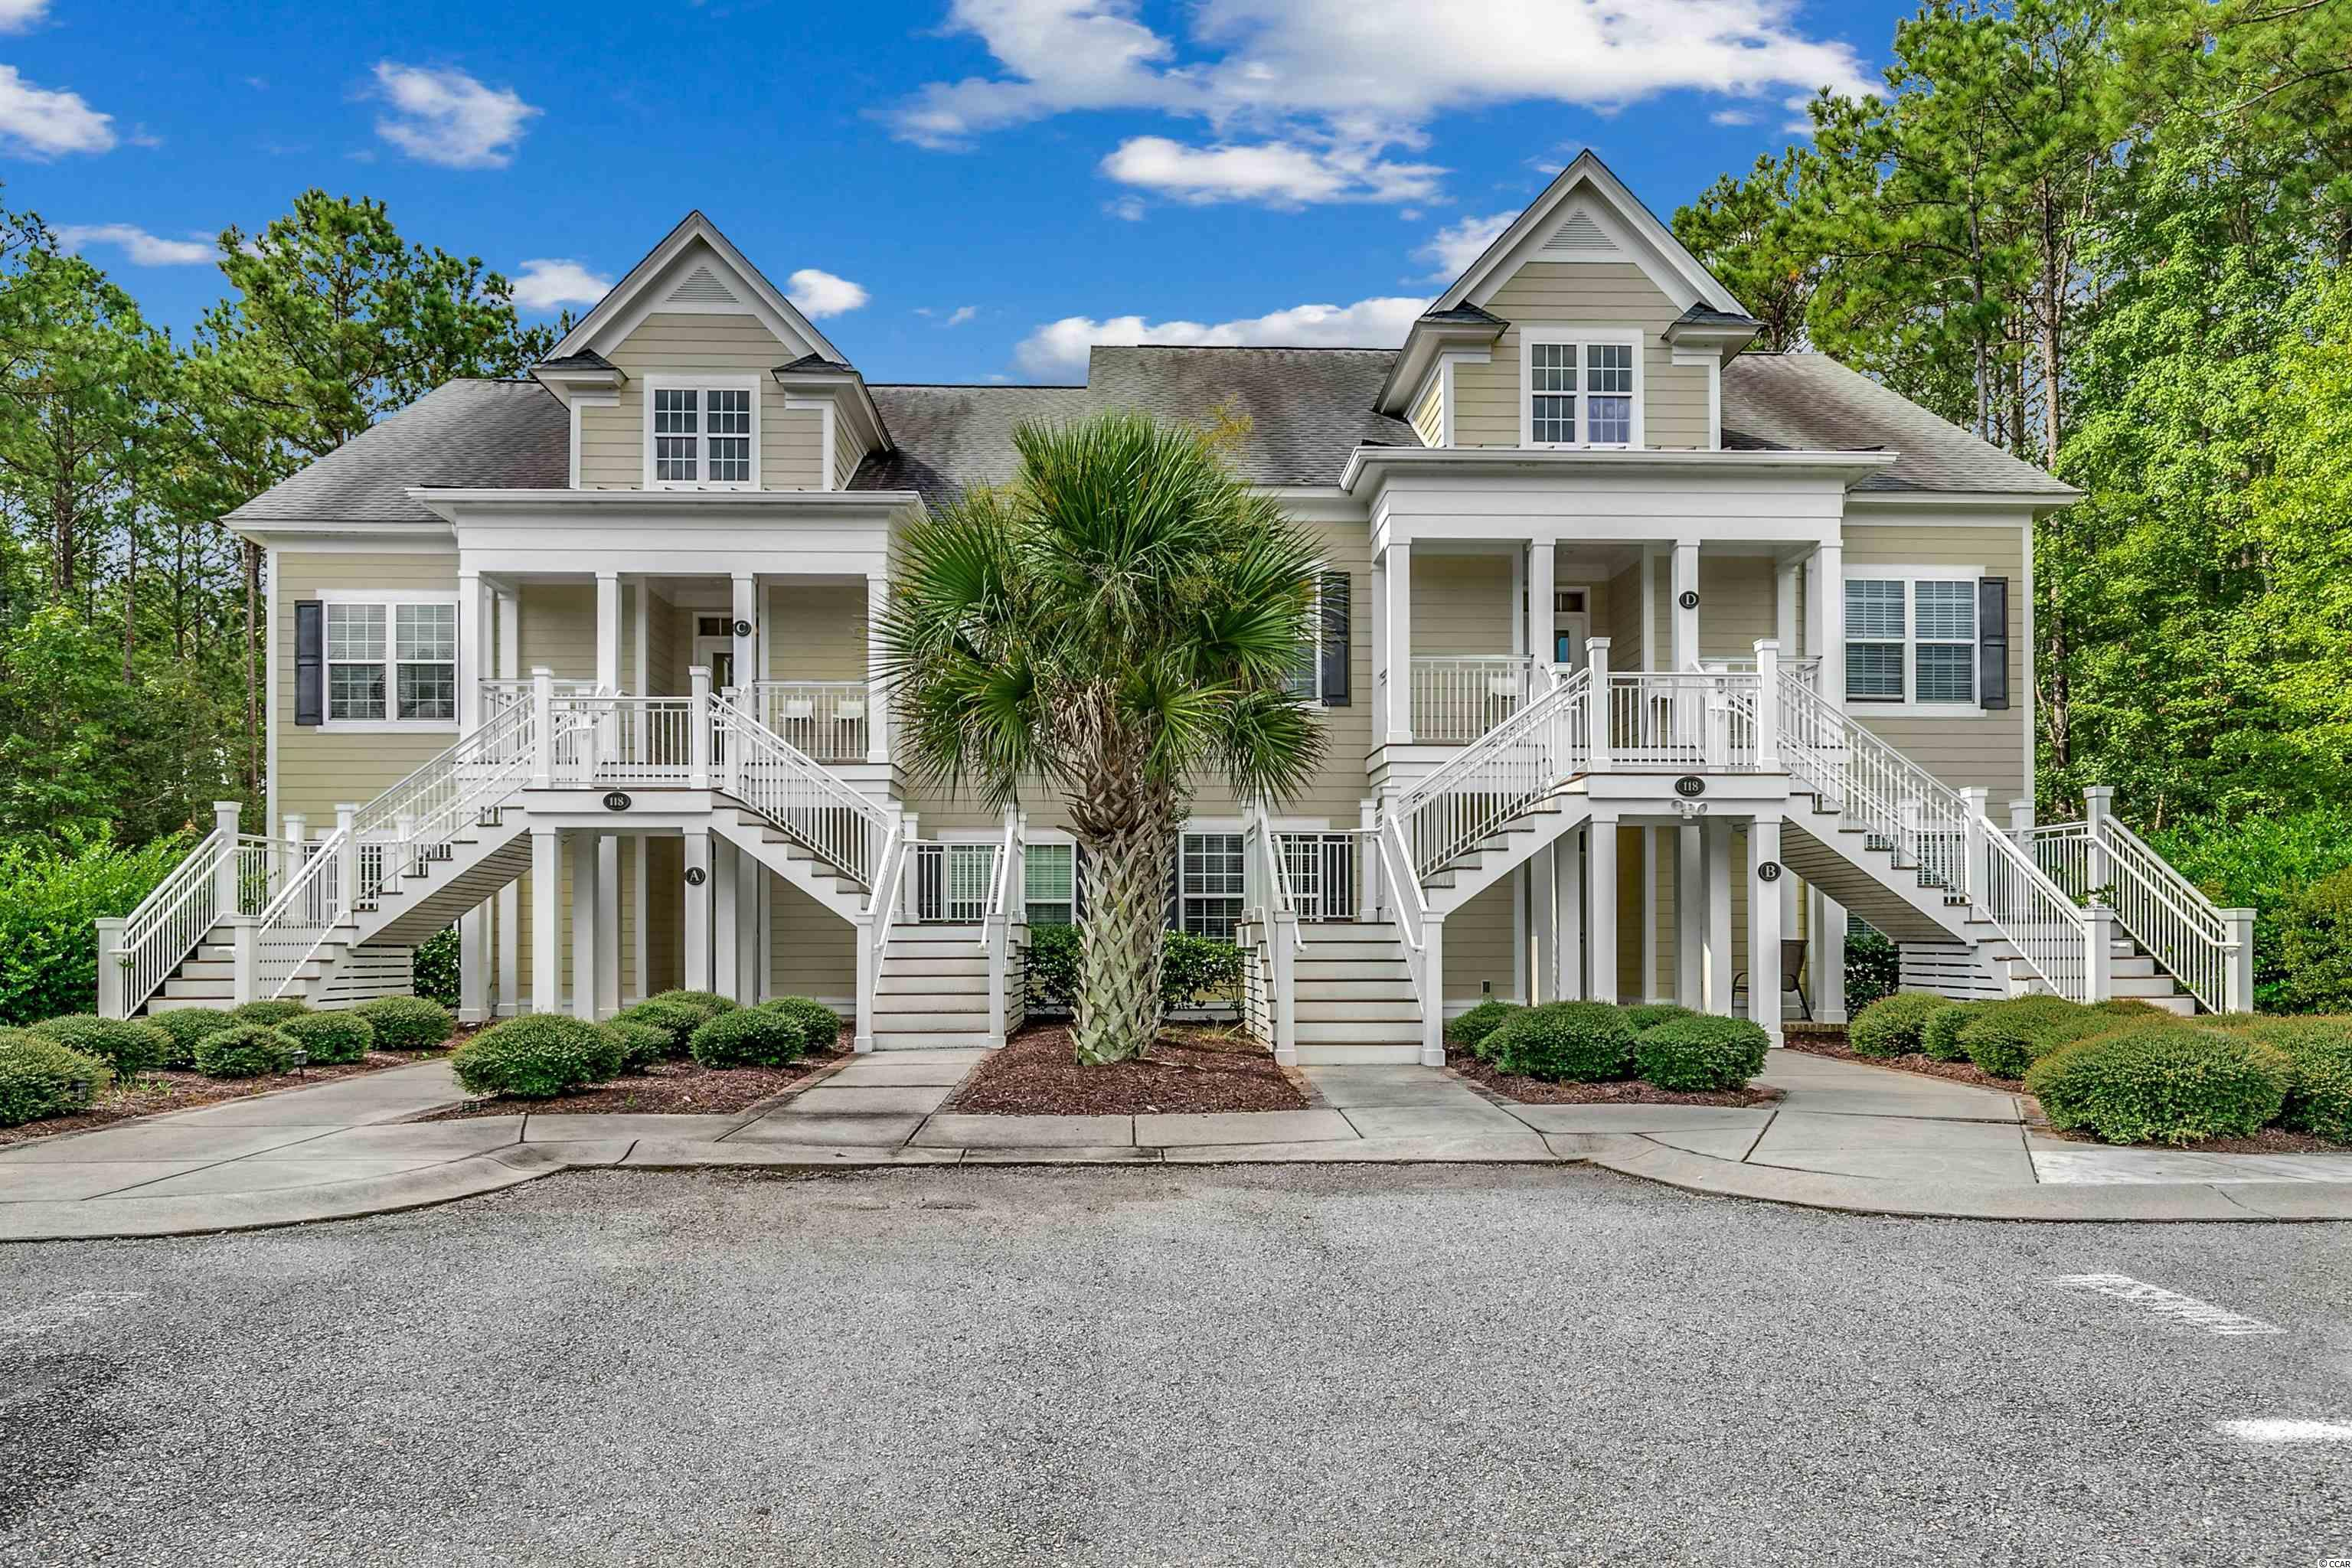 118 Old Course Rd. UNIT 118 B Murrells Inlet, SC 29576